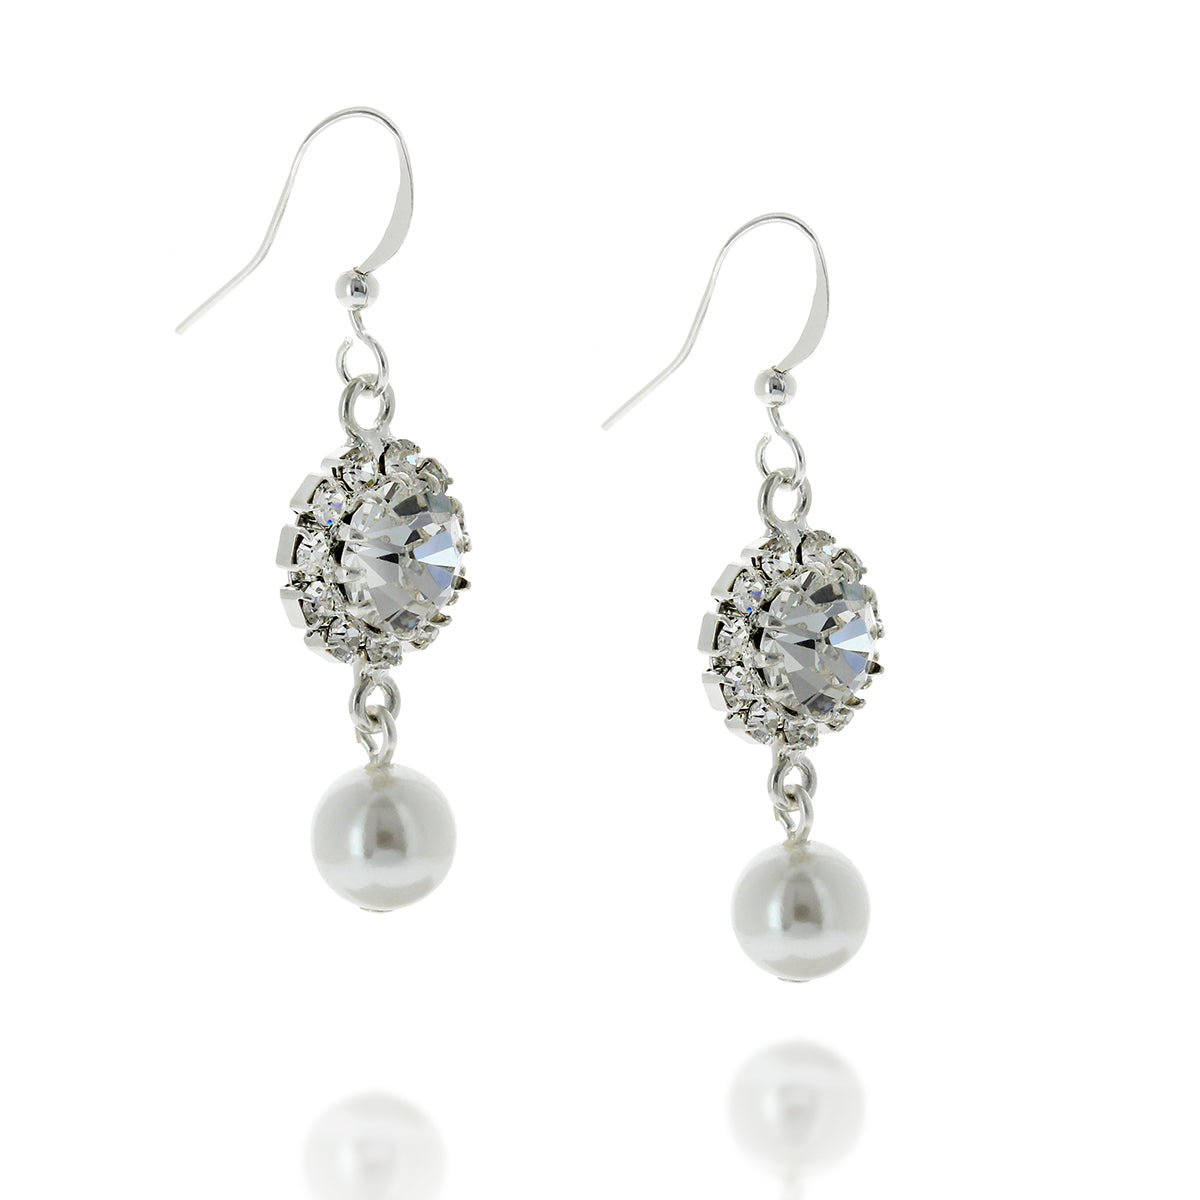 Rosetta Pearl Hooked Earrings.